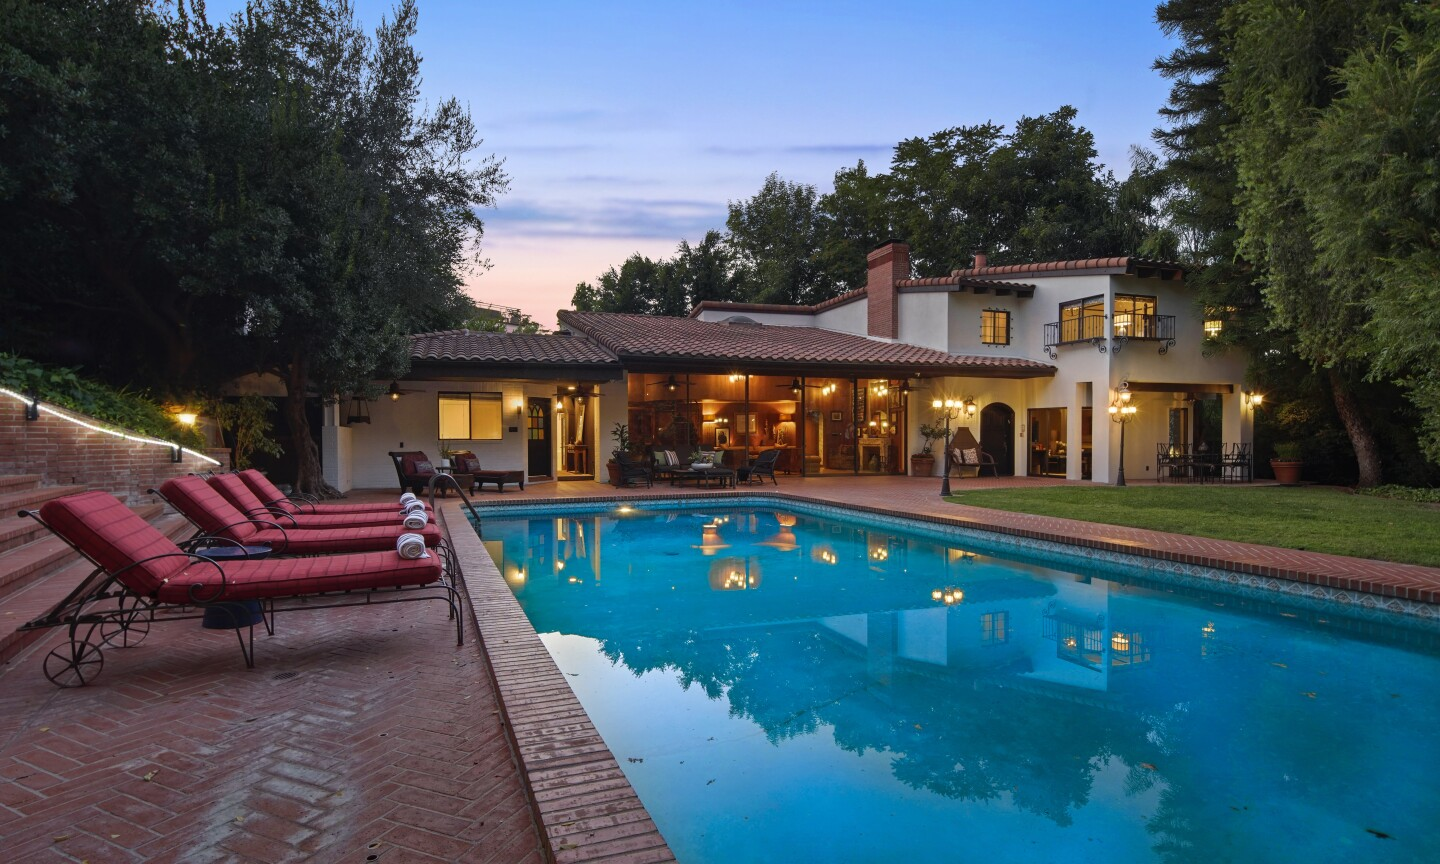 The half-acre property holds four residences, a swimming pool, gym and lawn lined with lampposts.